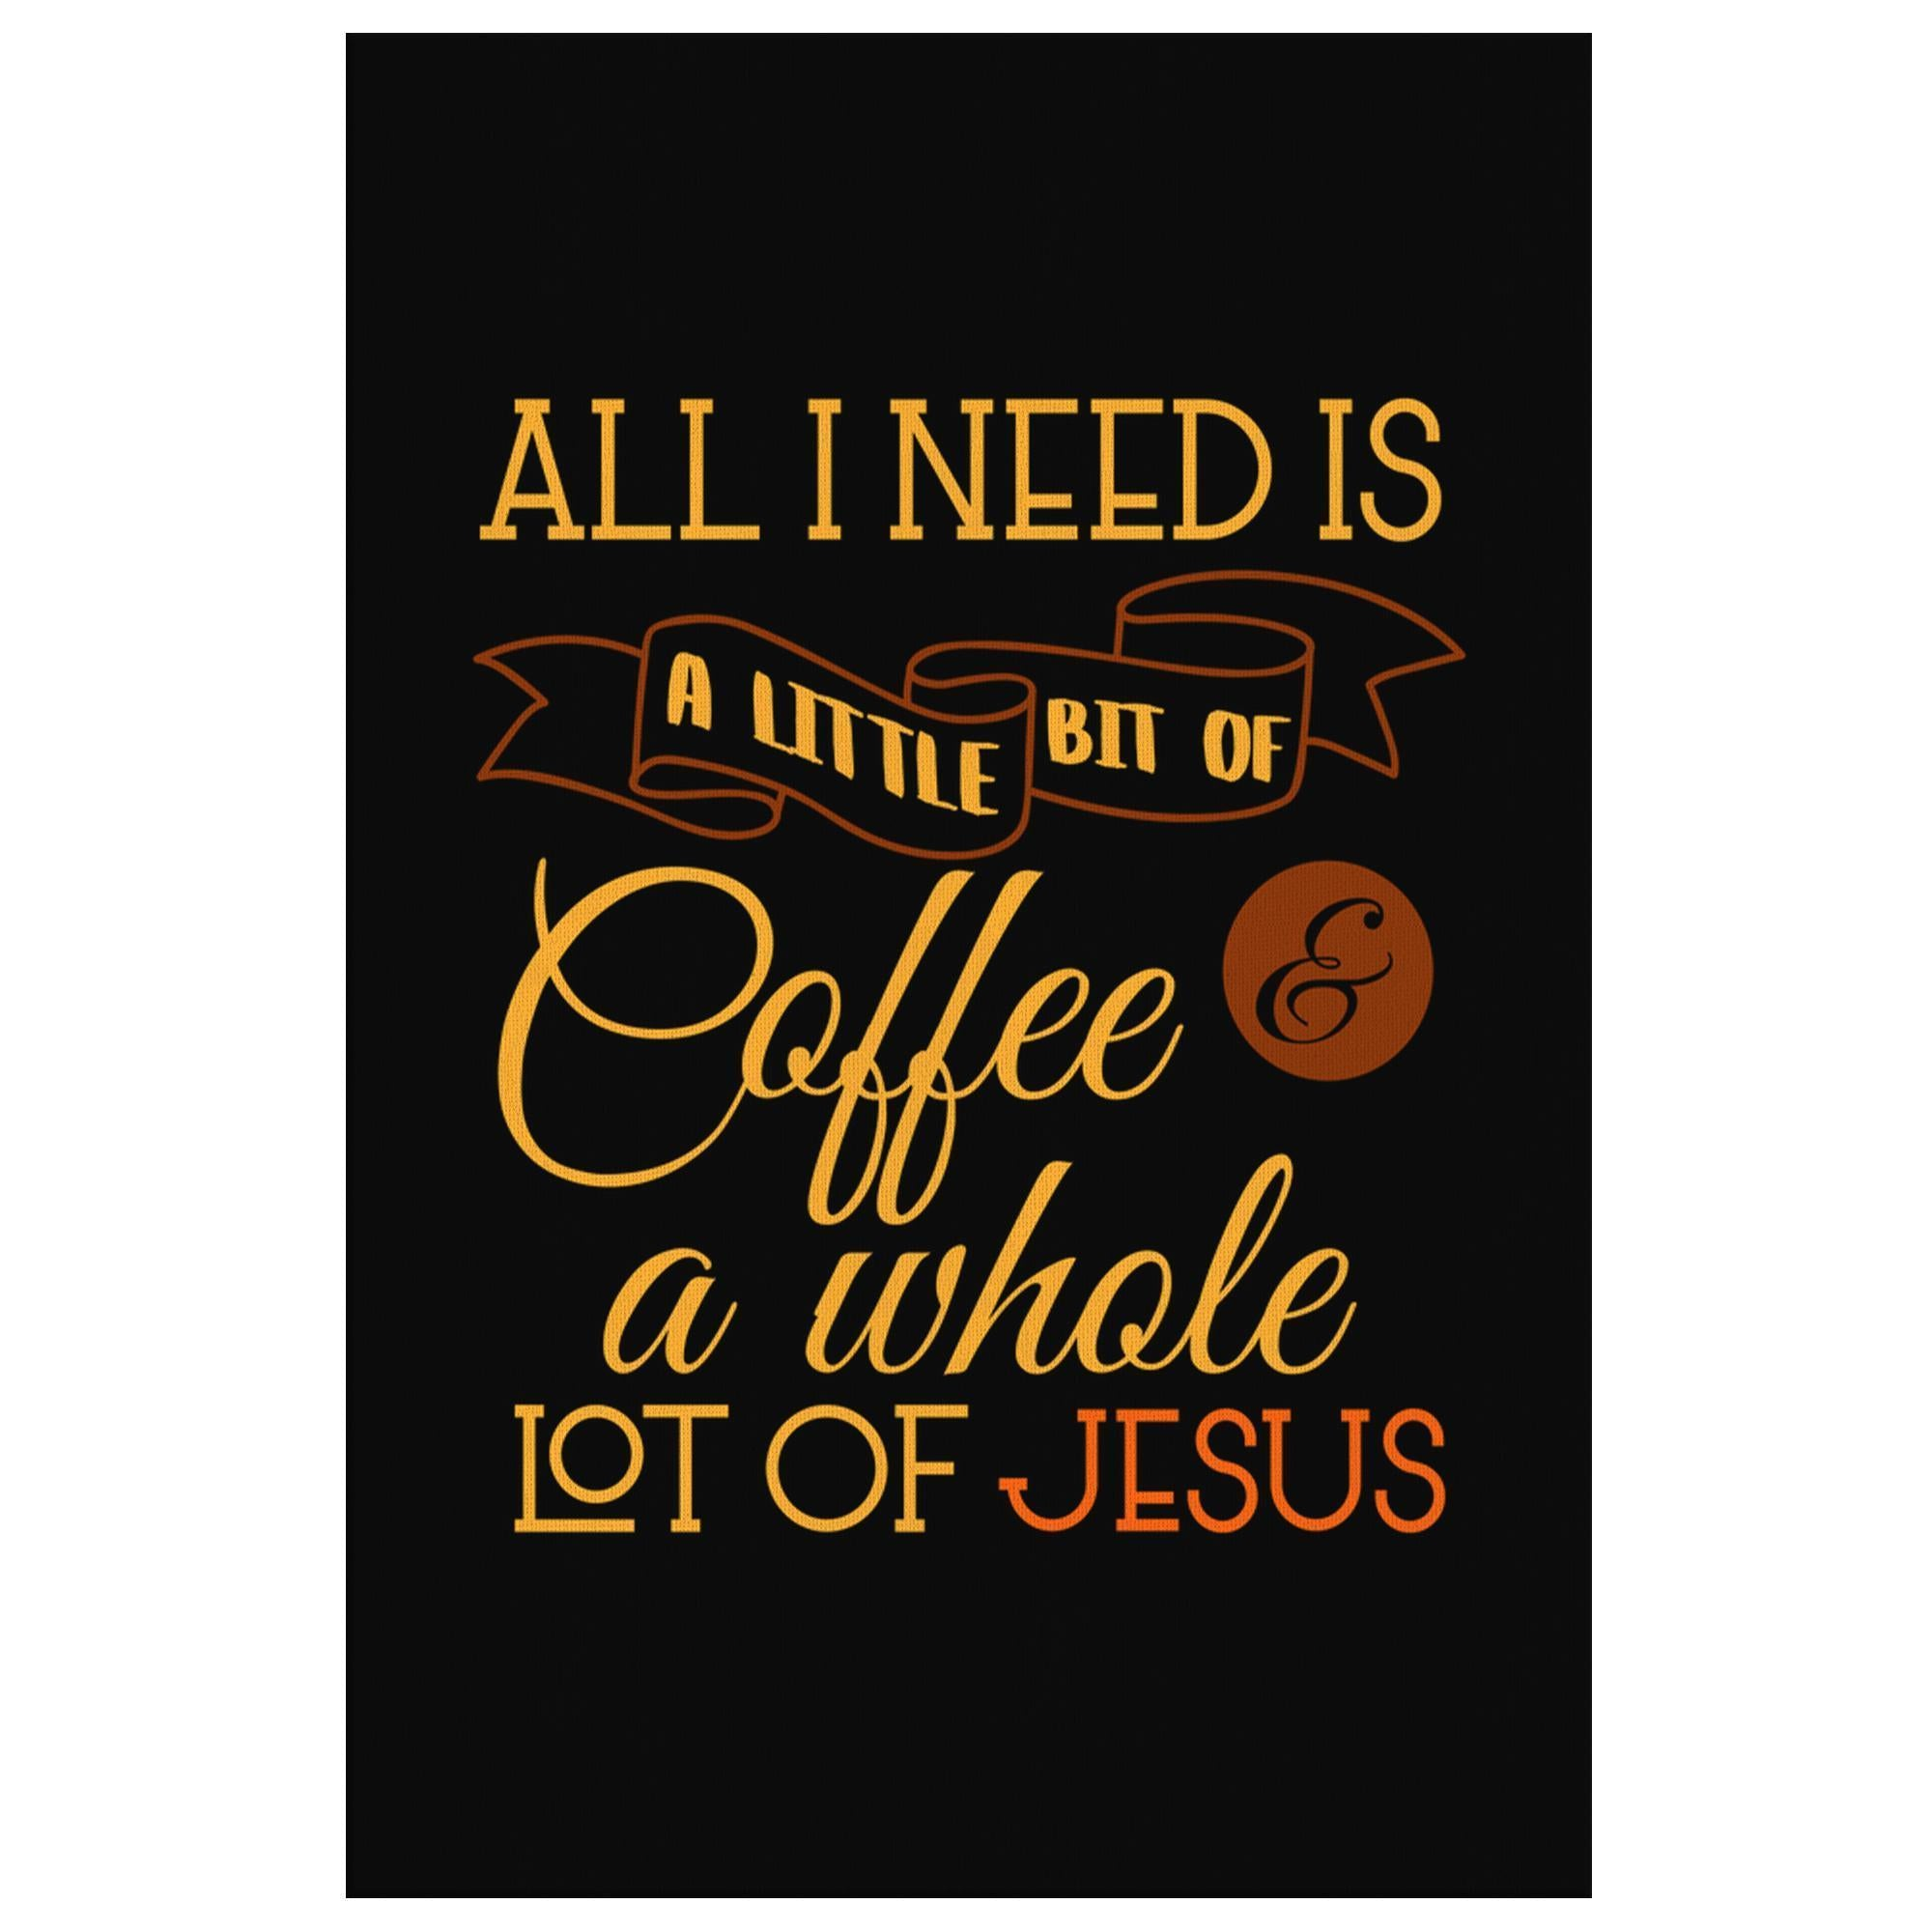 All I Need Is A Little Bit Of Coffee & A Whole Lot Of Jesus Funny Cute Christian-Canvas Wall Art 2-8 x 12-JoyHip.Com